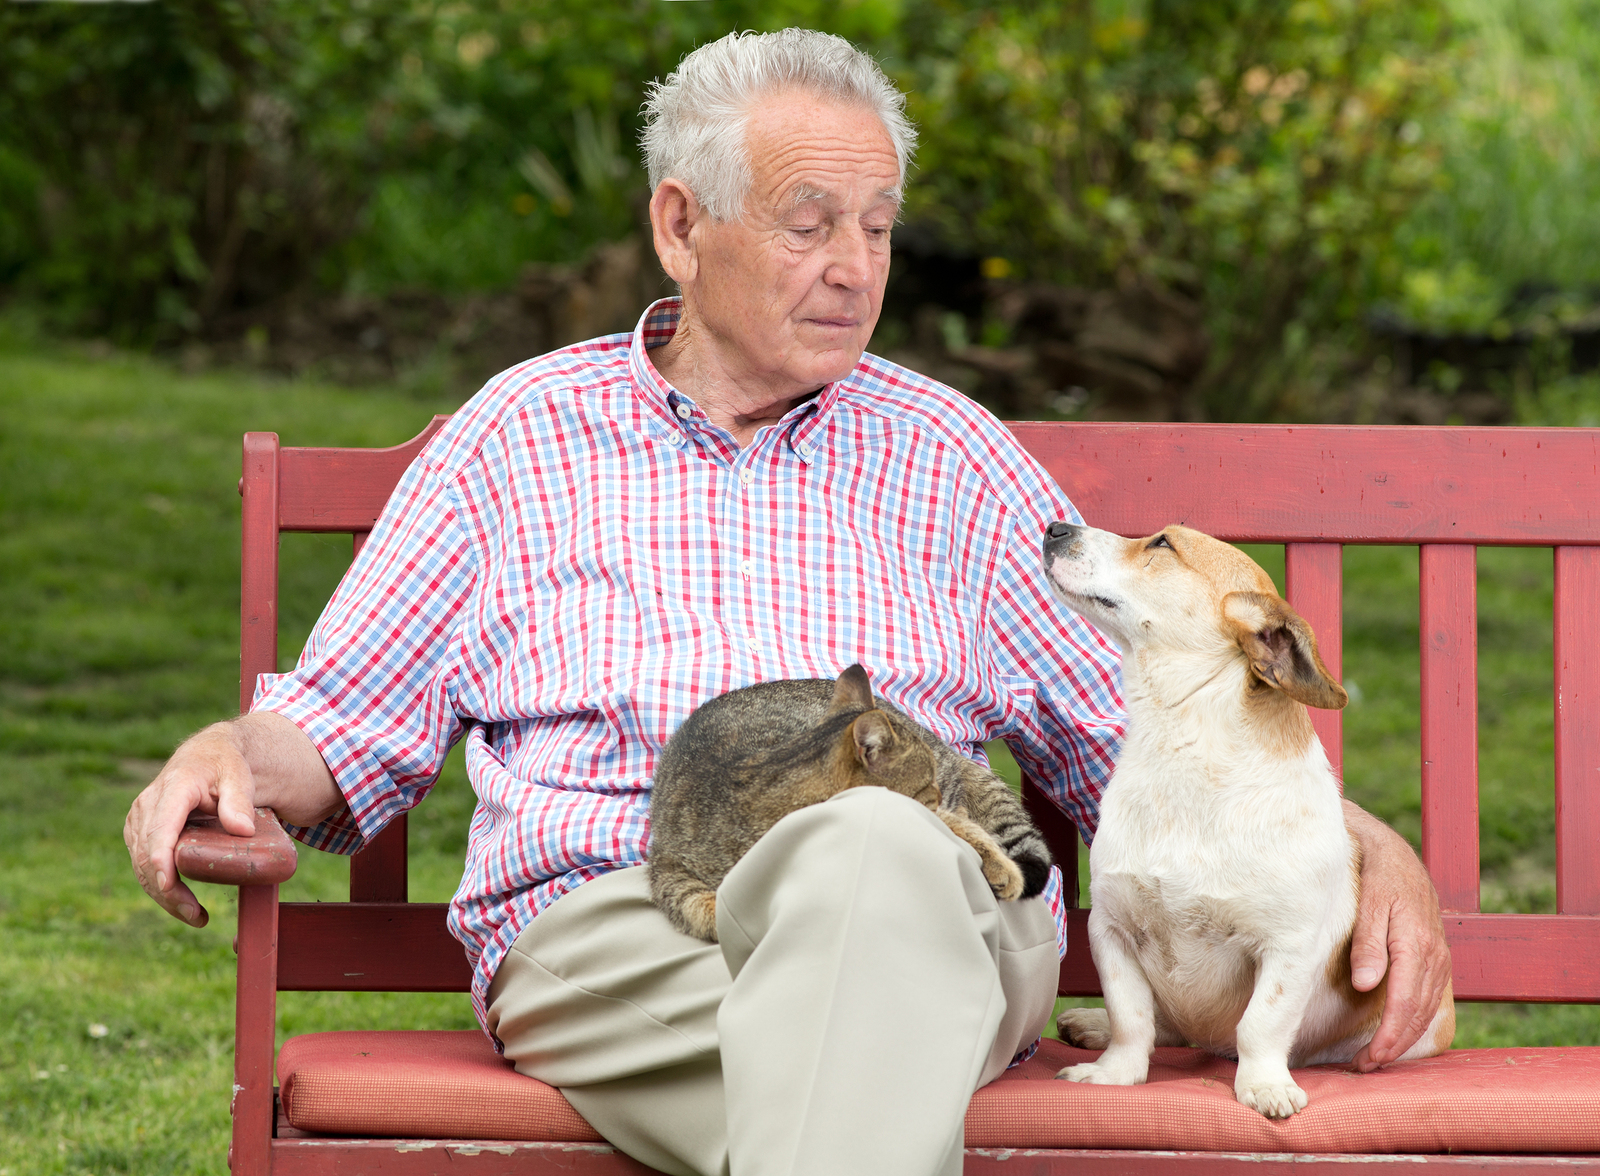 Senior-Man-With-Pets